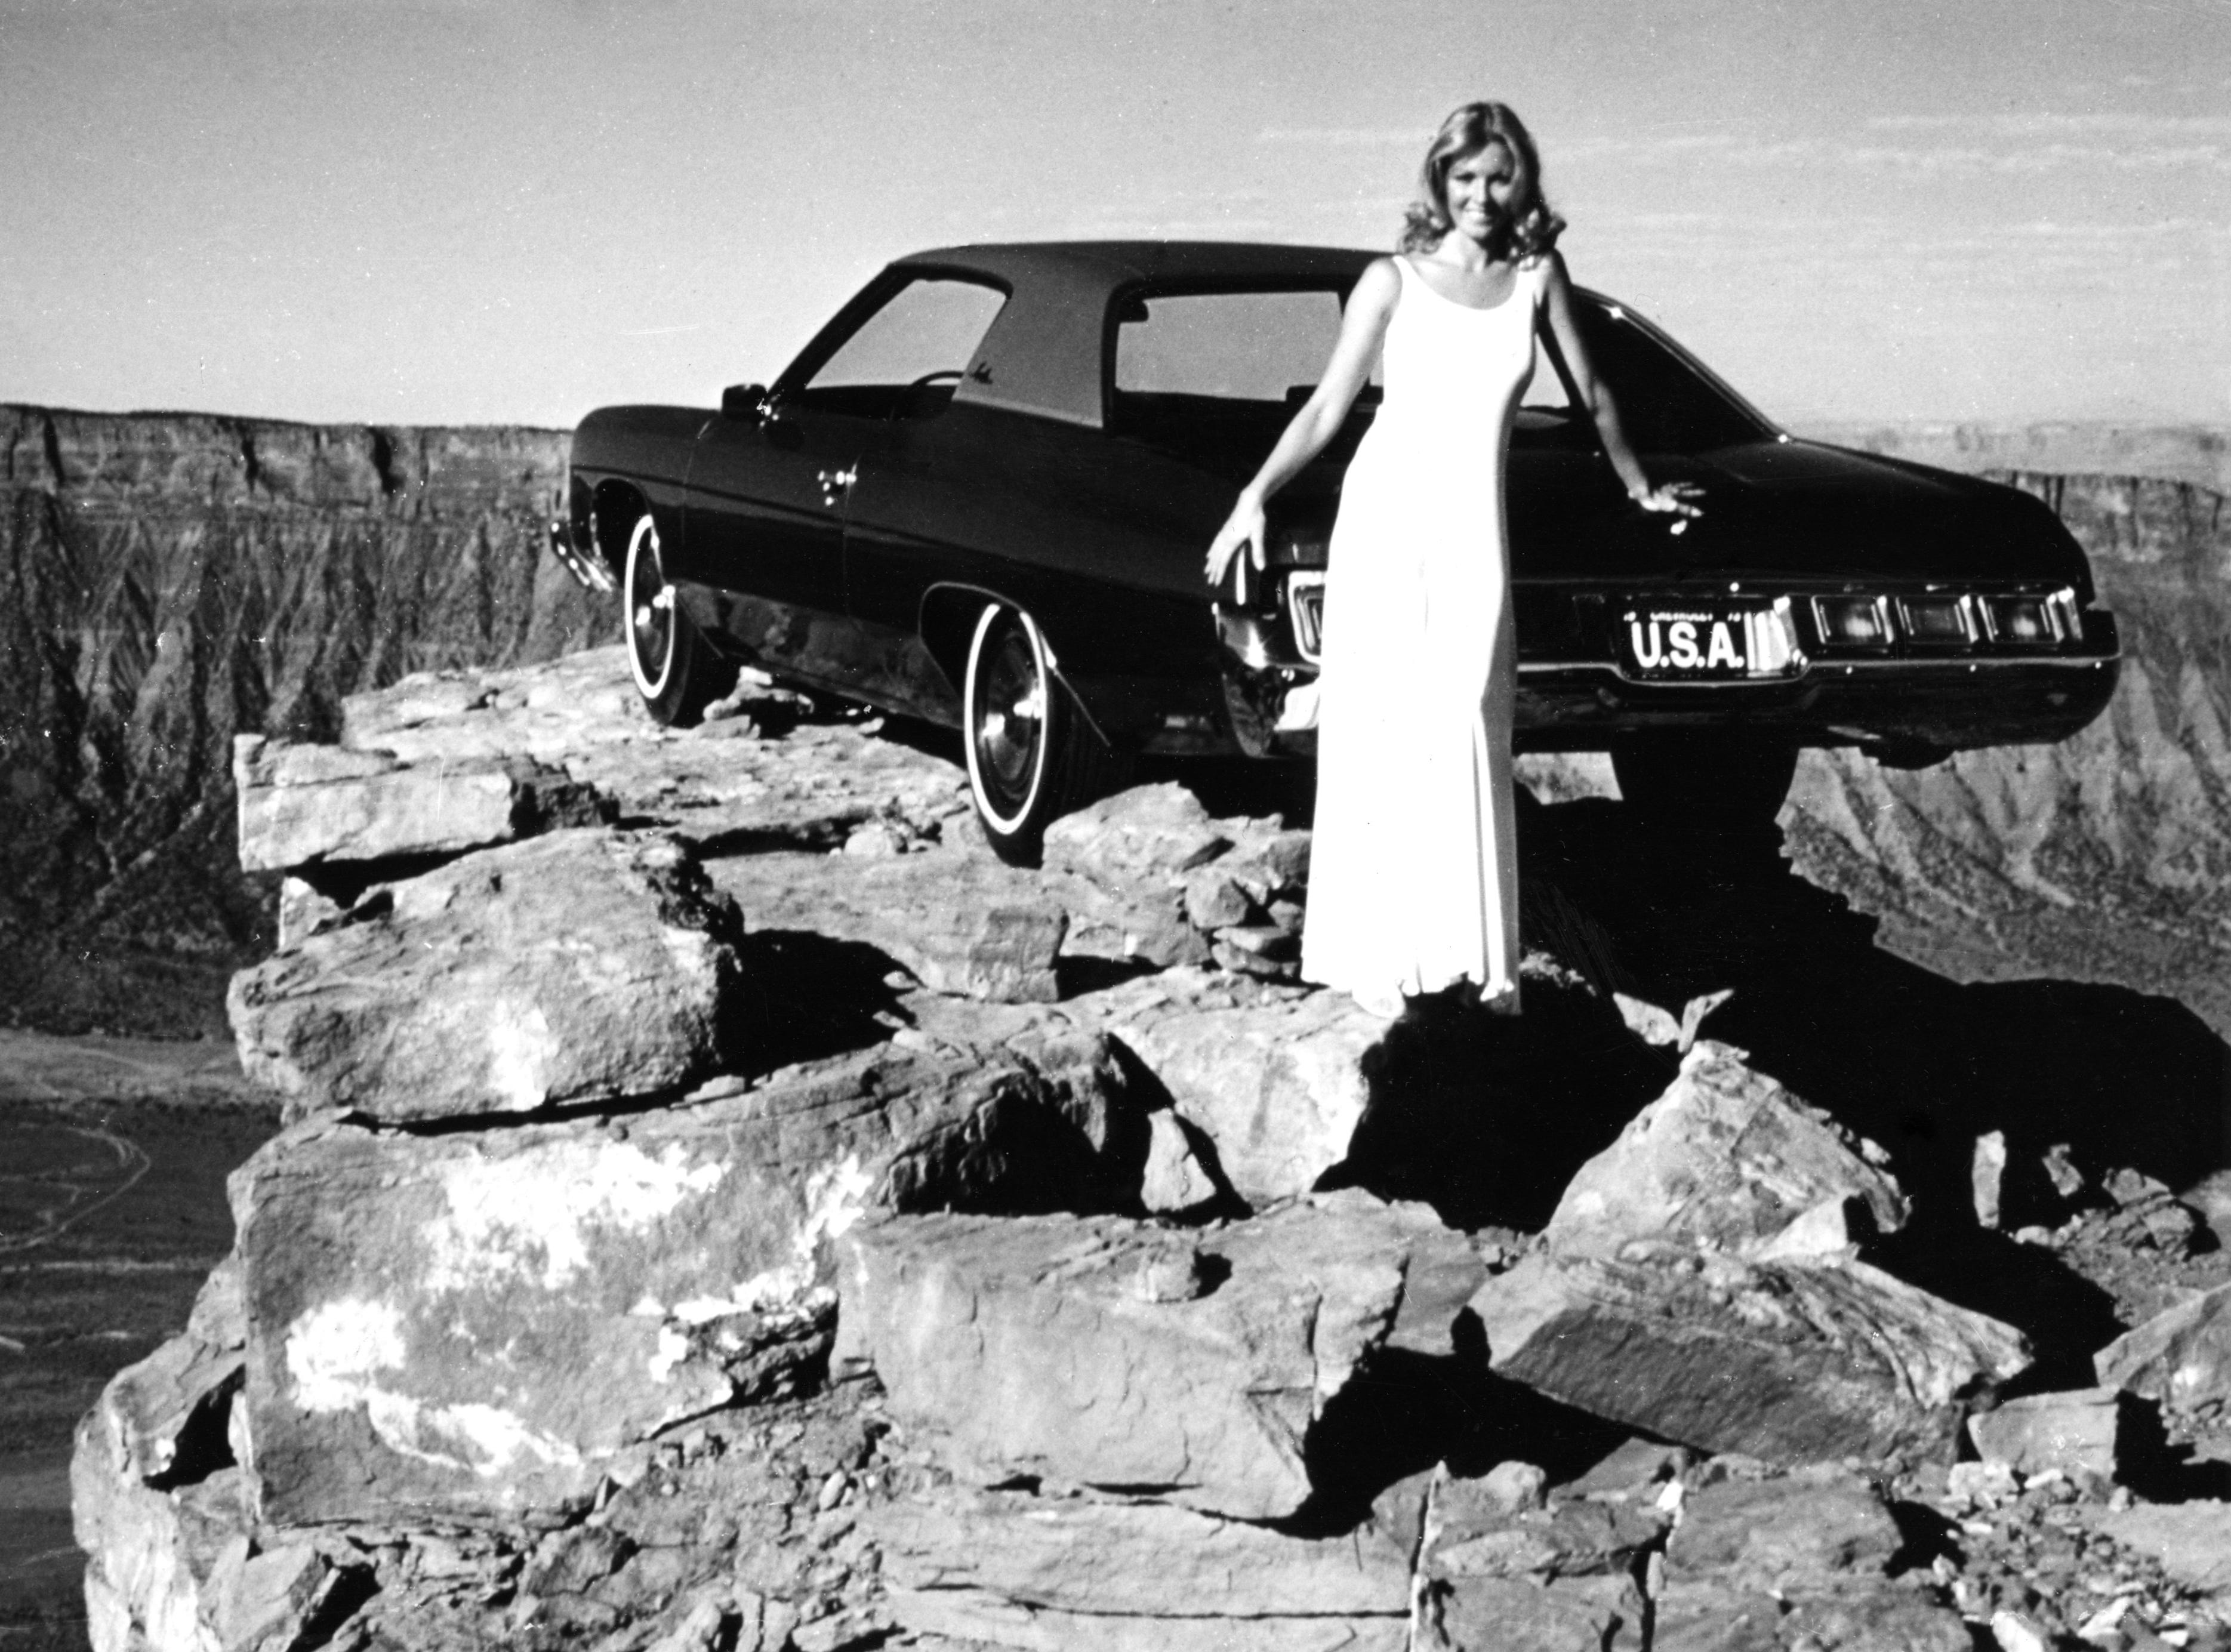 A commercial for the 1964 Impala put the car 1,500 feet in the air atop Castle Rock in Utah. This photo is from a 1972 recreation.